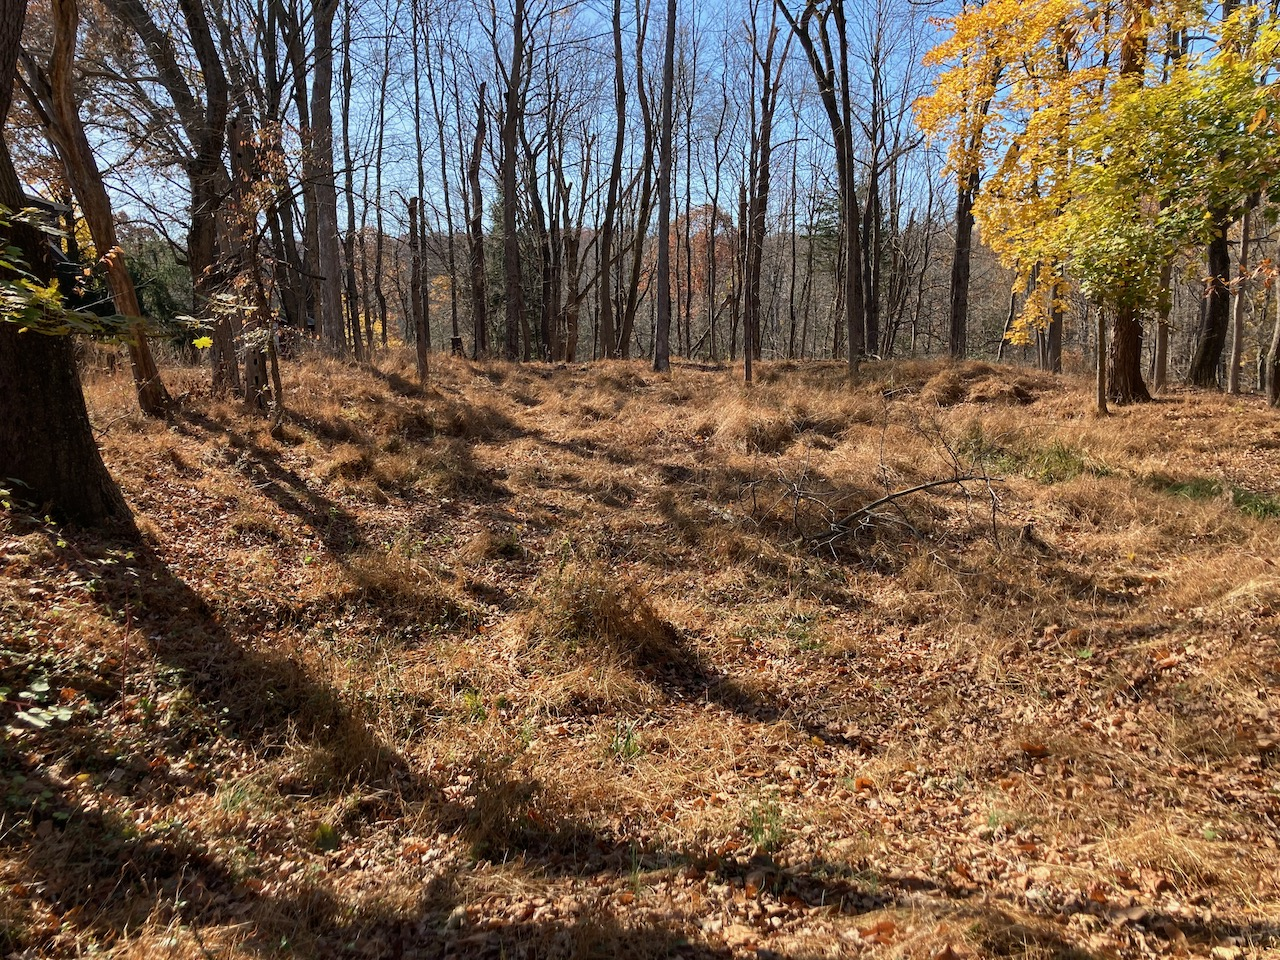 Remains of redoubt in clearing in forest.